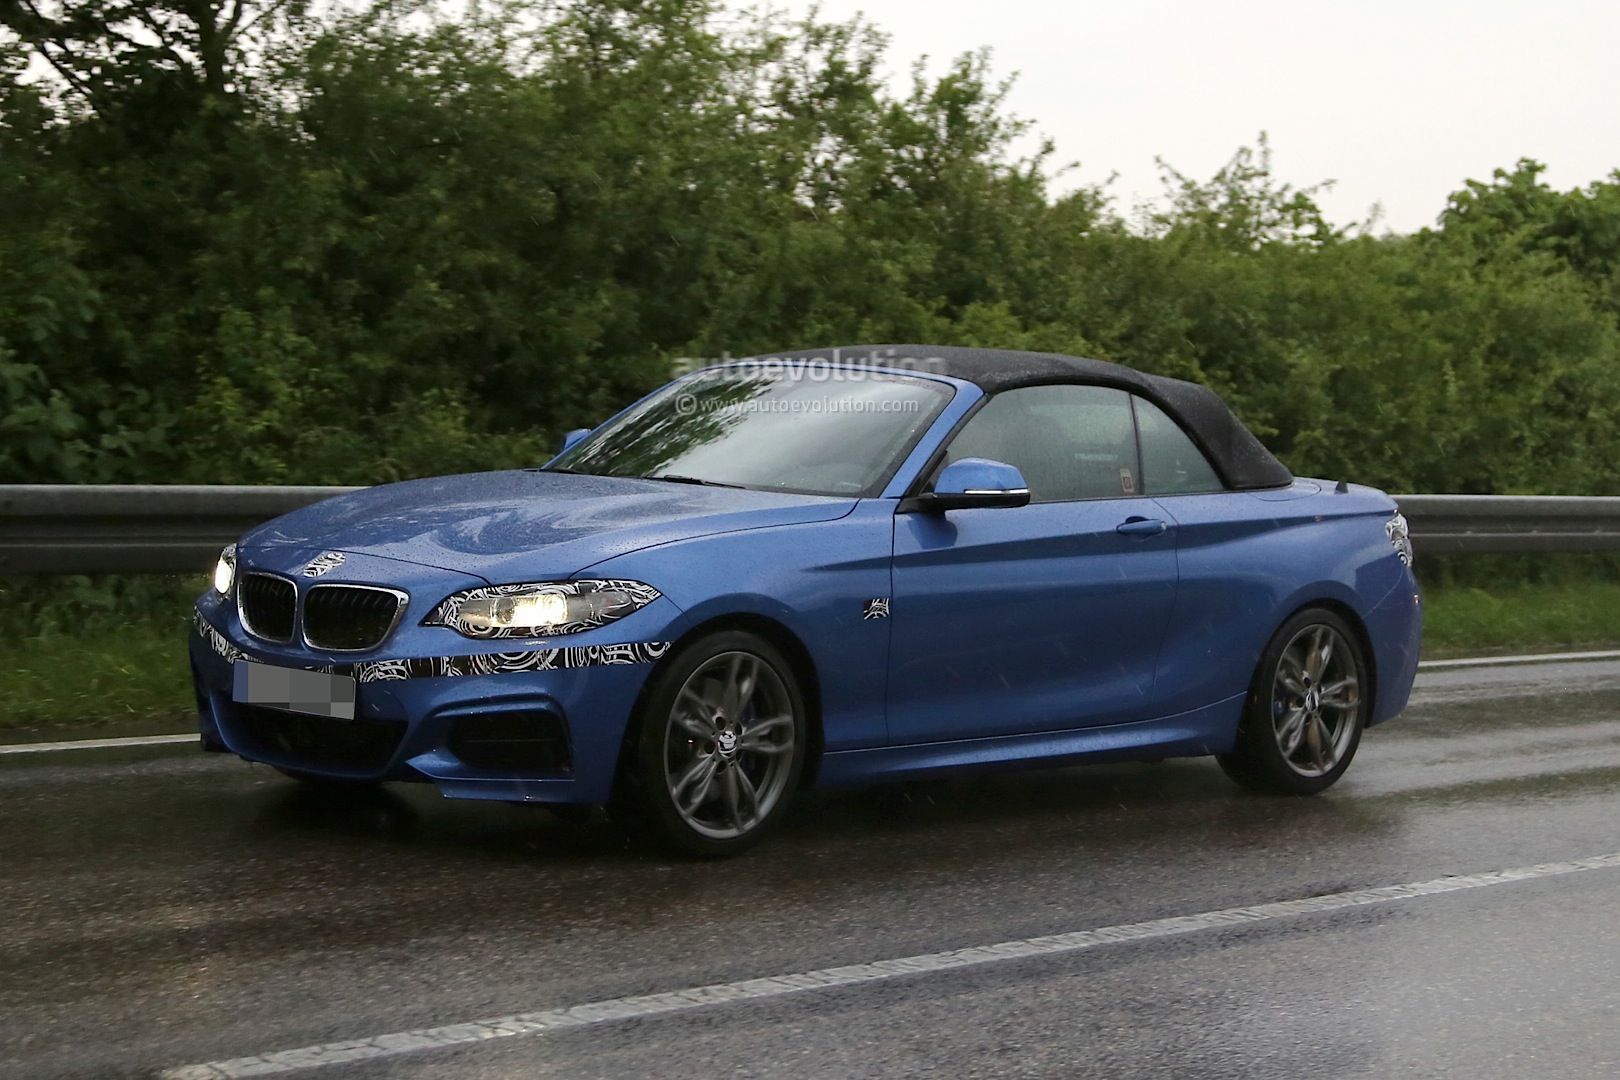 Bmw M235i Vs Audi S3 Battle Of The Compact Performance